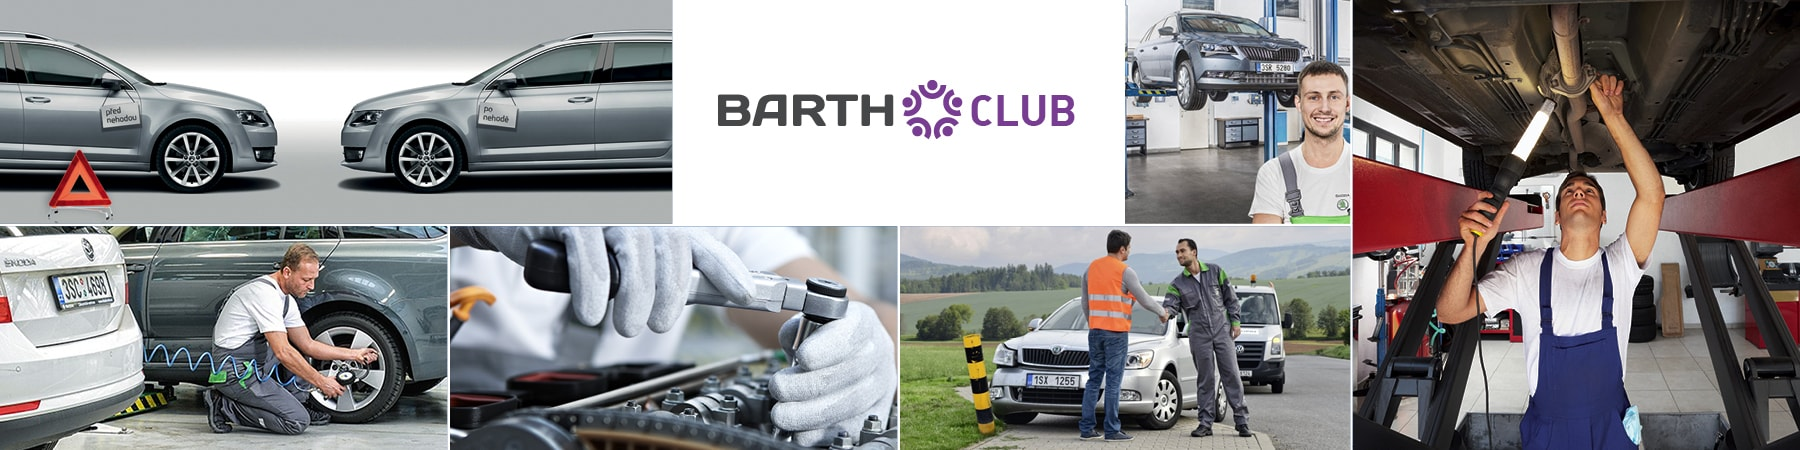 Servis - BARTH Club